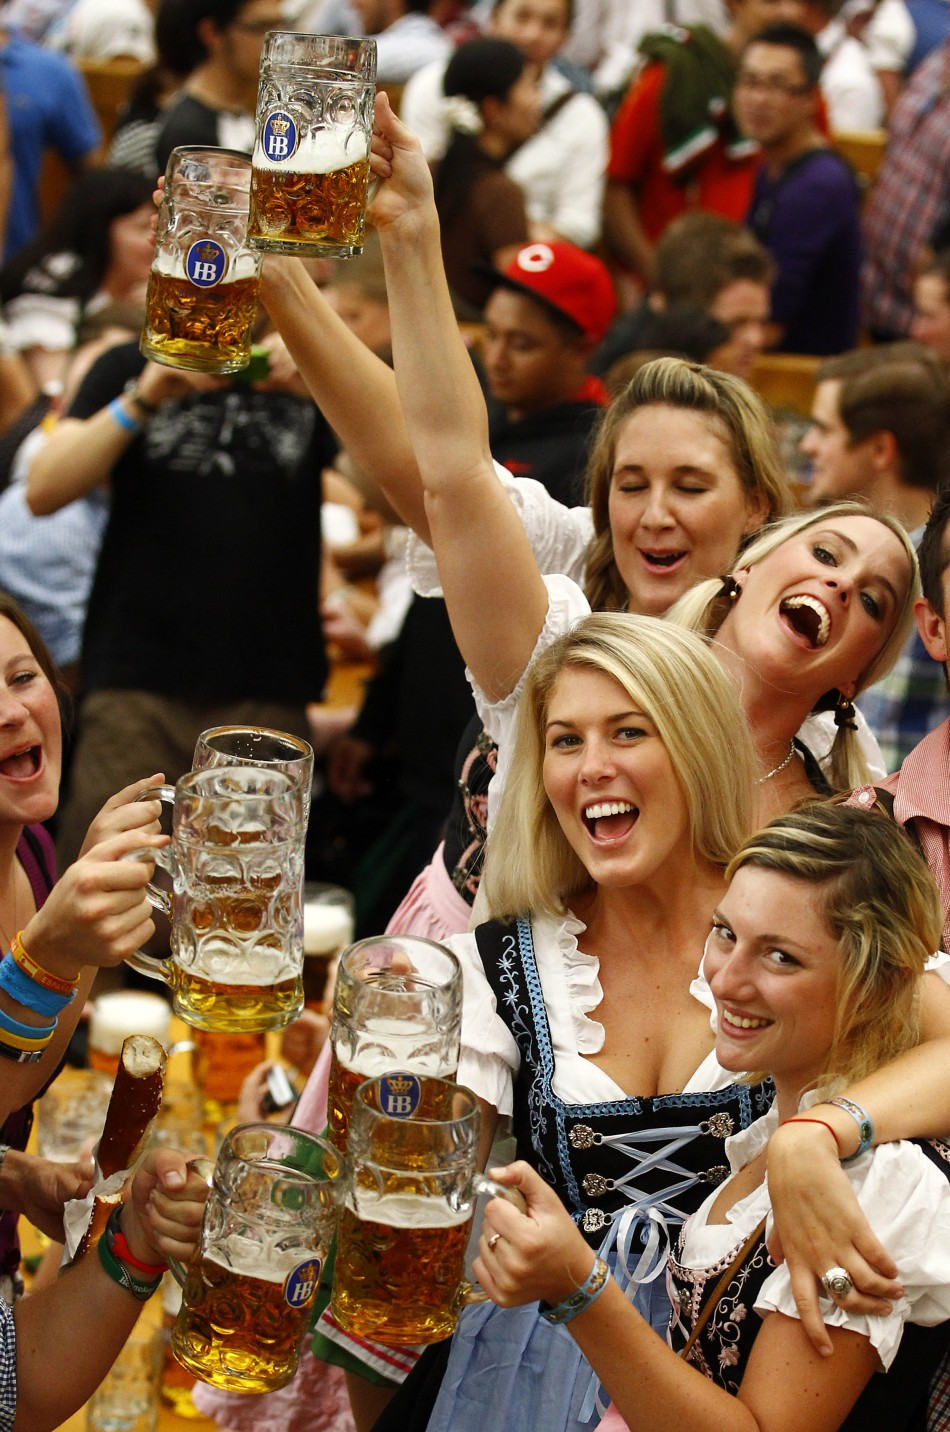 oktoberfest in munich 2018 edition of oktoberfest insider will be held at munich starting on 22nd  september it is a 16 day event organised by mark zanzig and will conclude on.